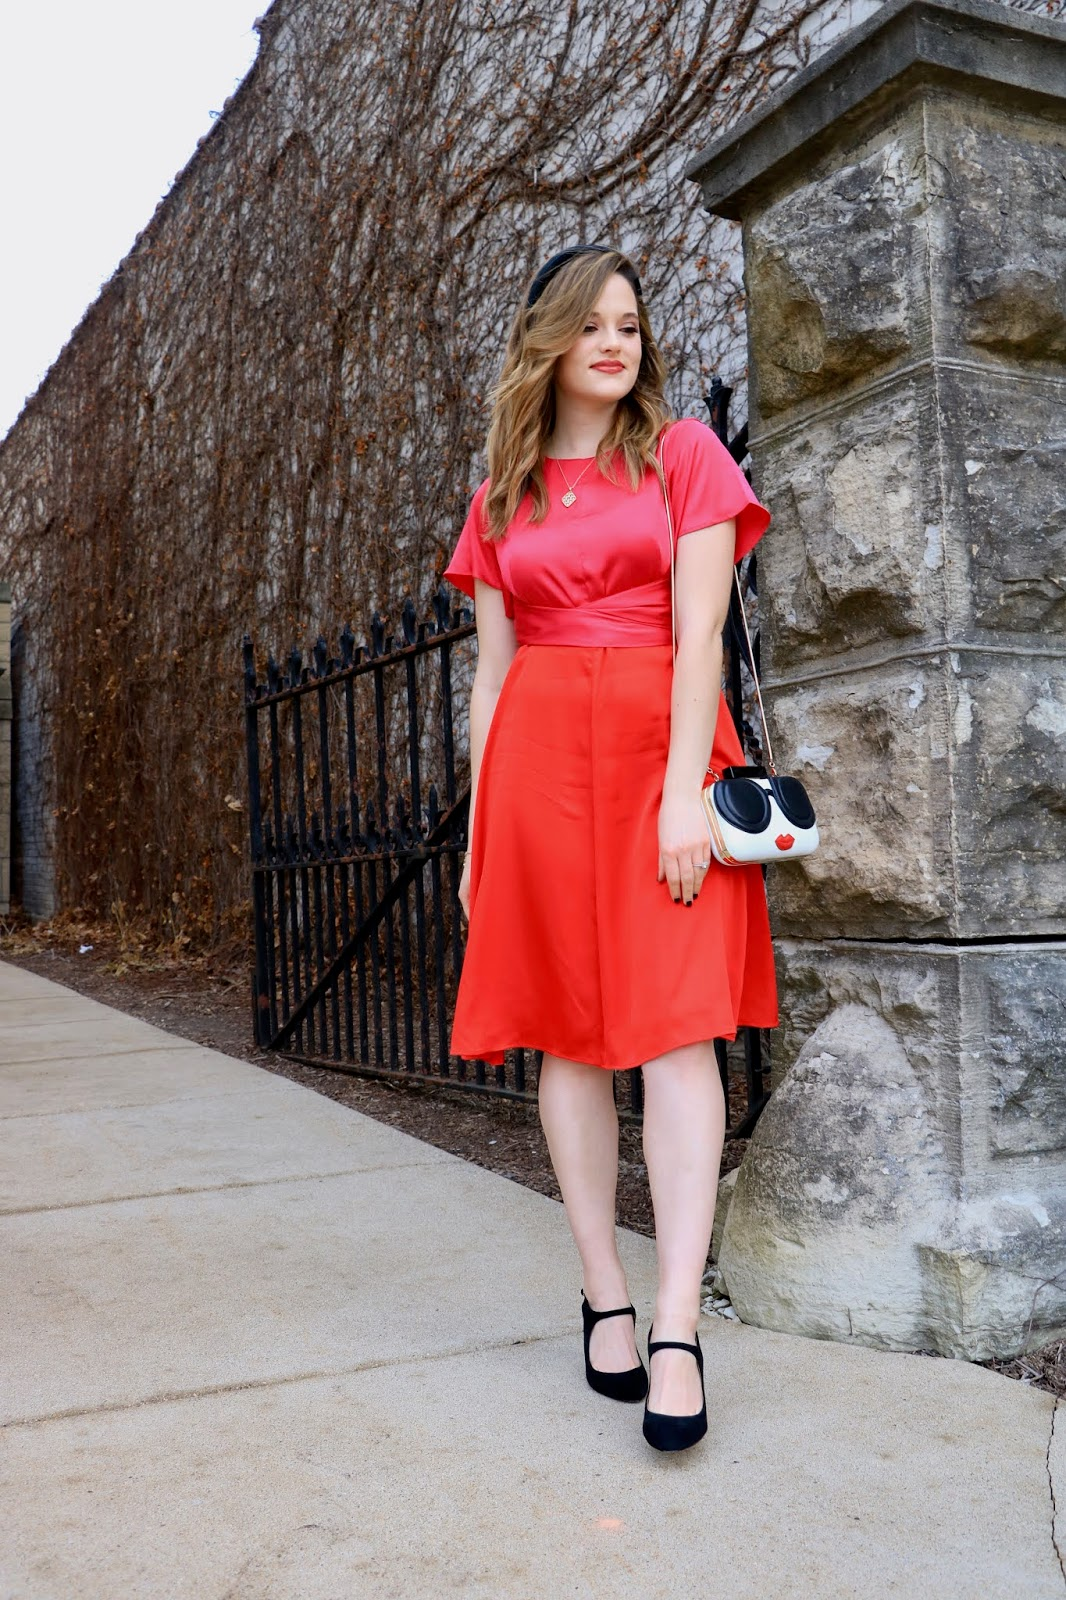 Nyc fashion blogger Kathleen Harper wearing a 2020 Valentine's Day outfit.